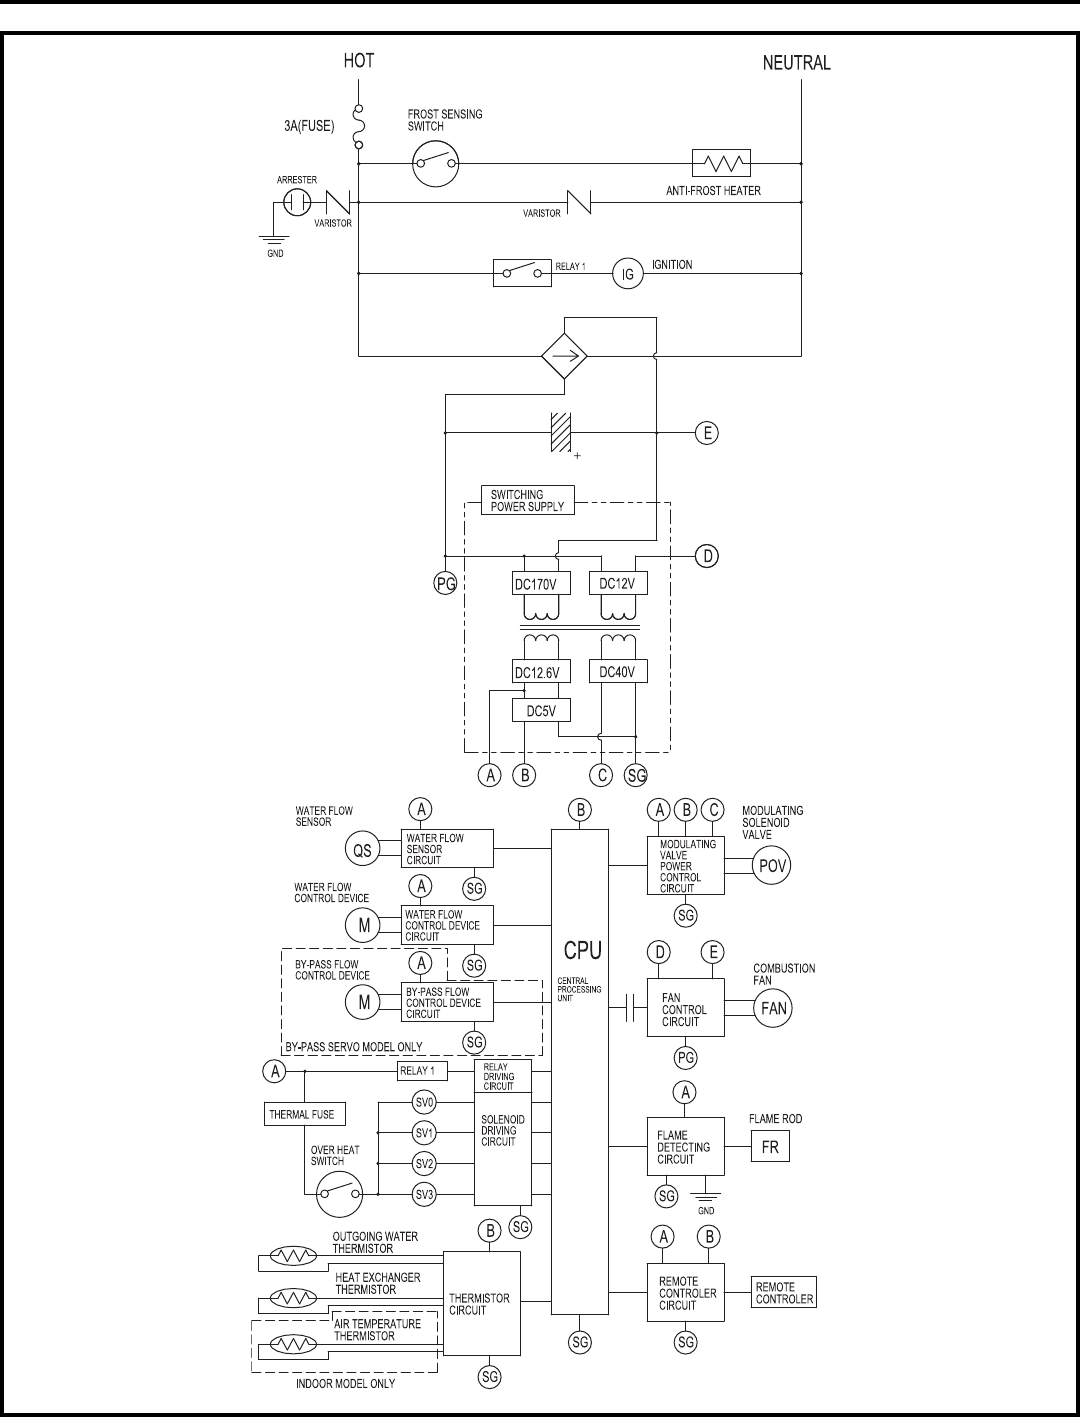 water heater ladder diagram   27 wiring diagram images